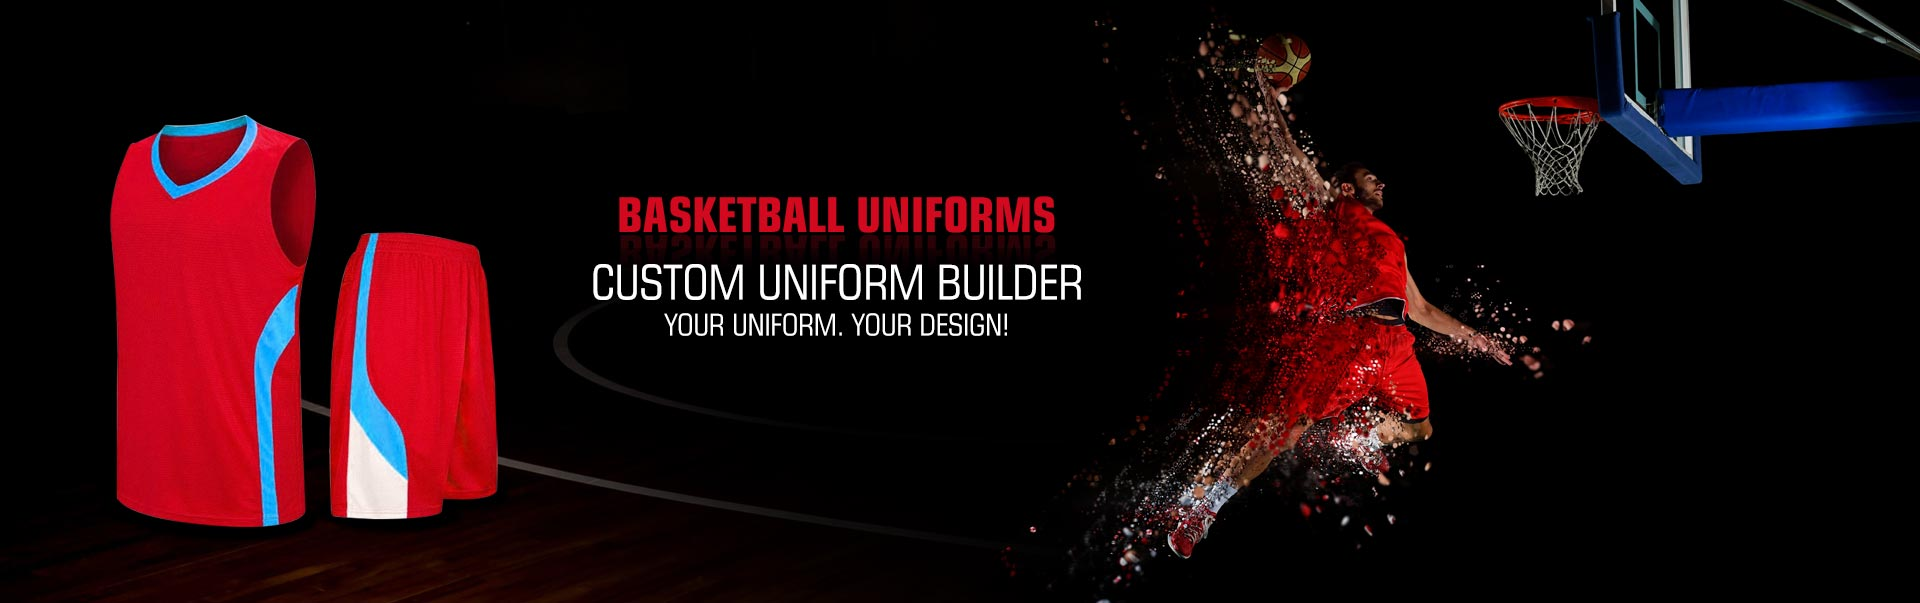 Basketball Uniforms in Australia, New Zealand, London, Canada, France, Germany